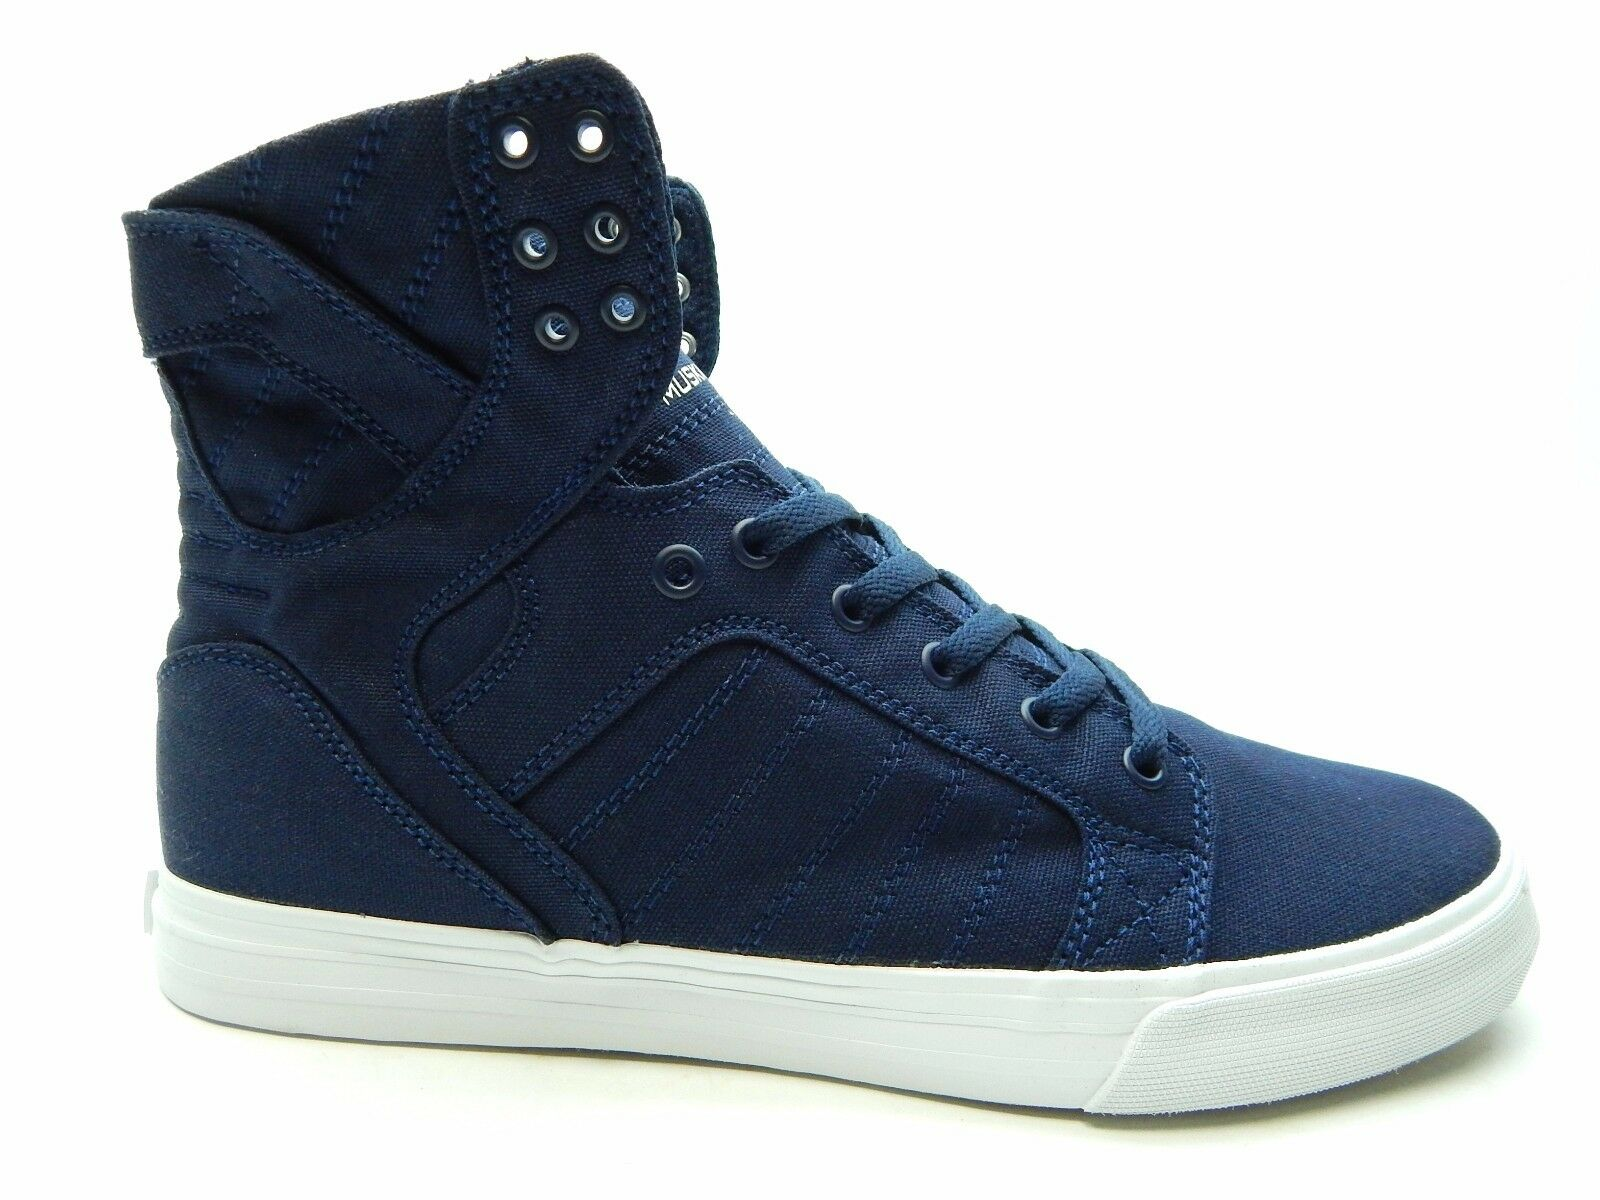 SUPRA SKYTOP D NAVY WHITE Uomo SHOES SIZE 8.5 TO 14  S98004